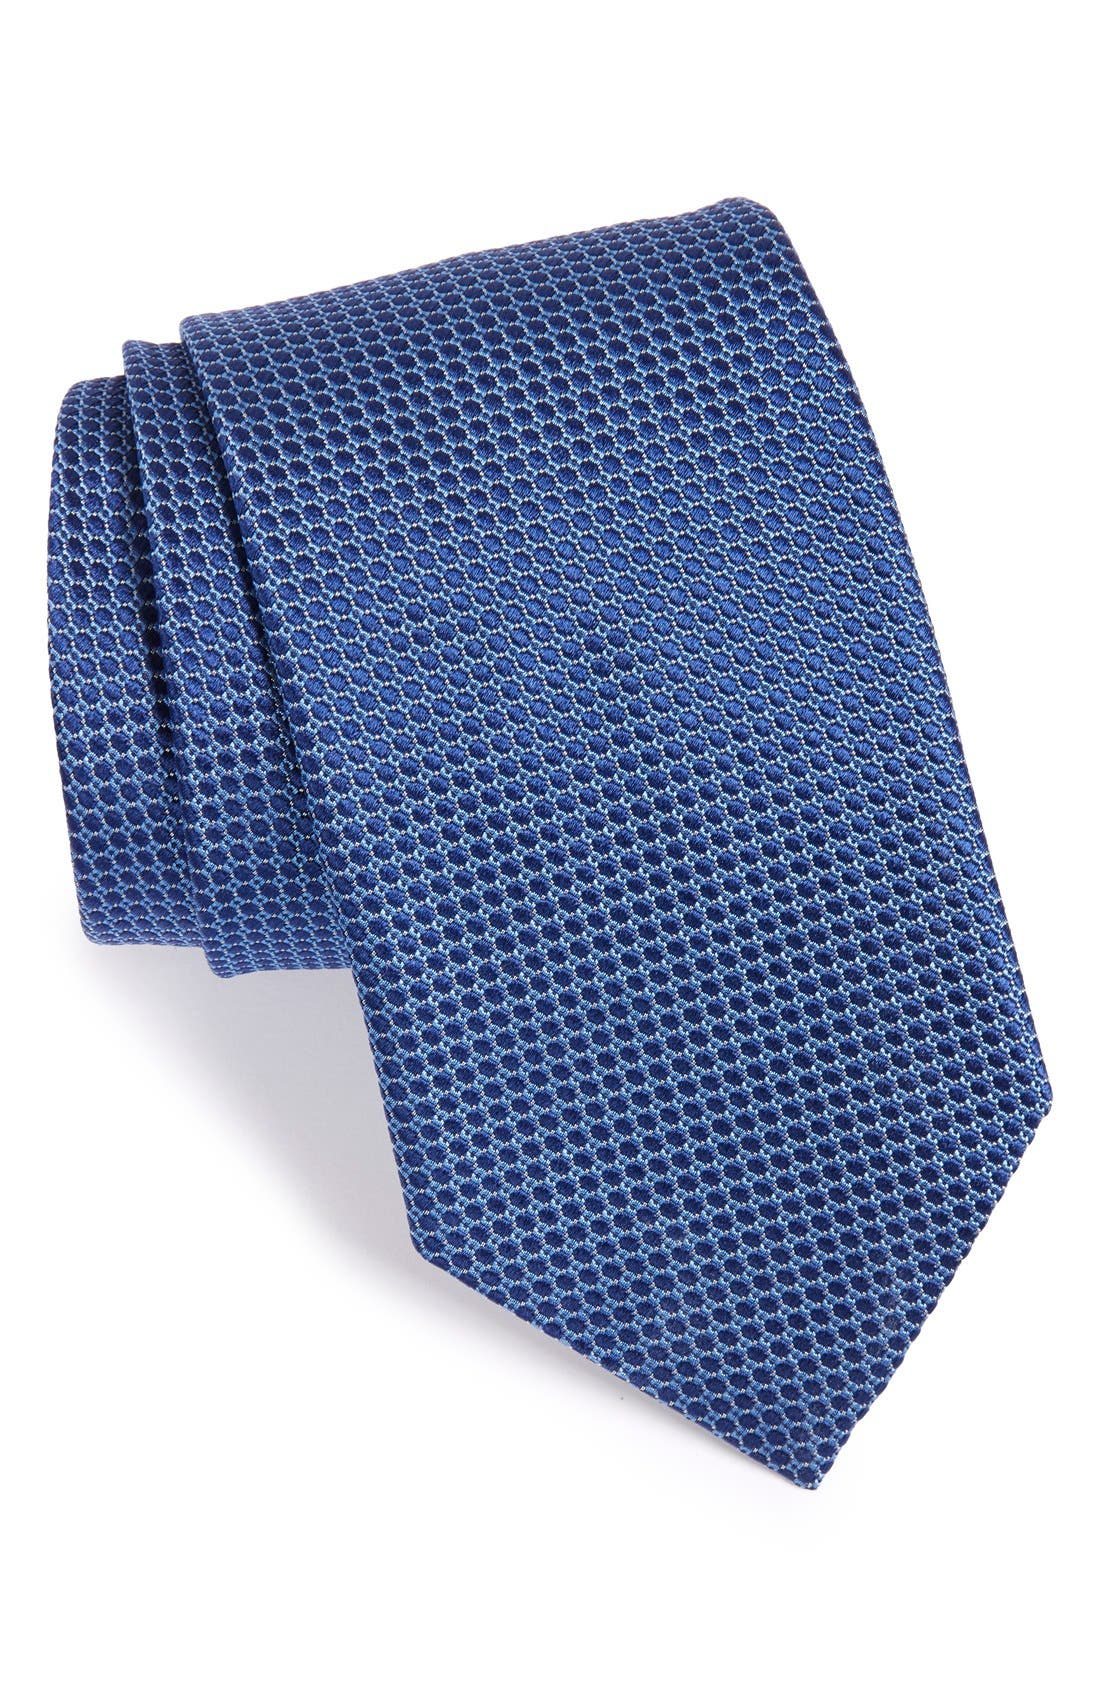 Dot Silk Tie,                             Main thumbnail 1, color,                             BLUE